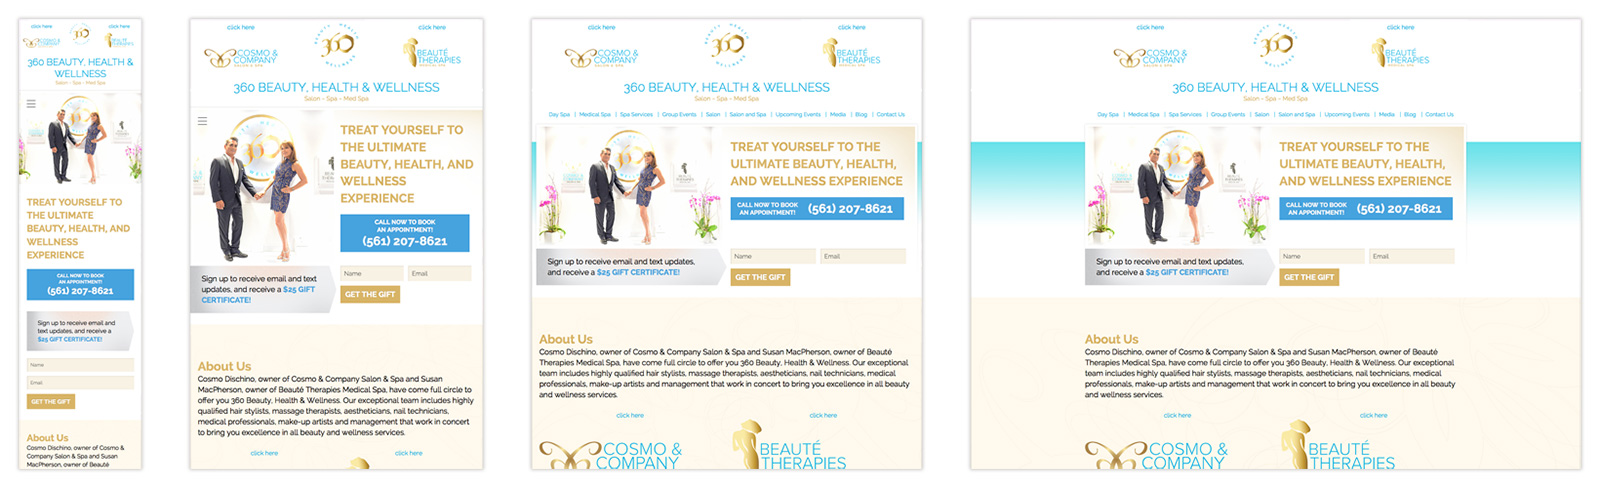 360 Beauty Health Wellness